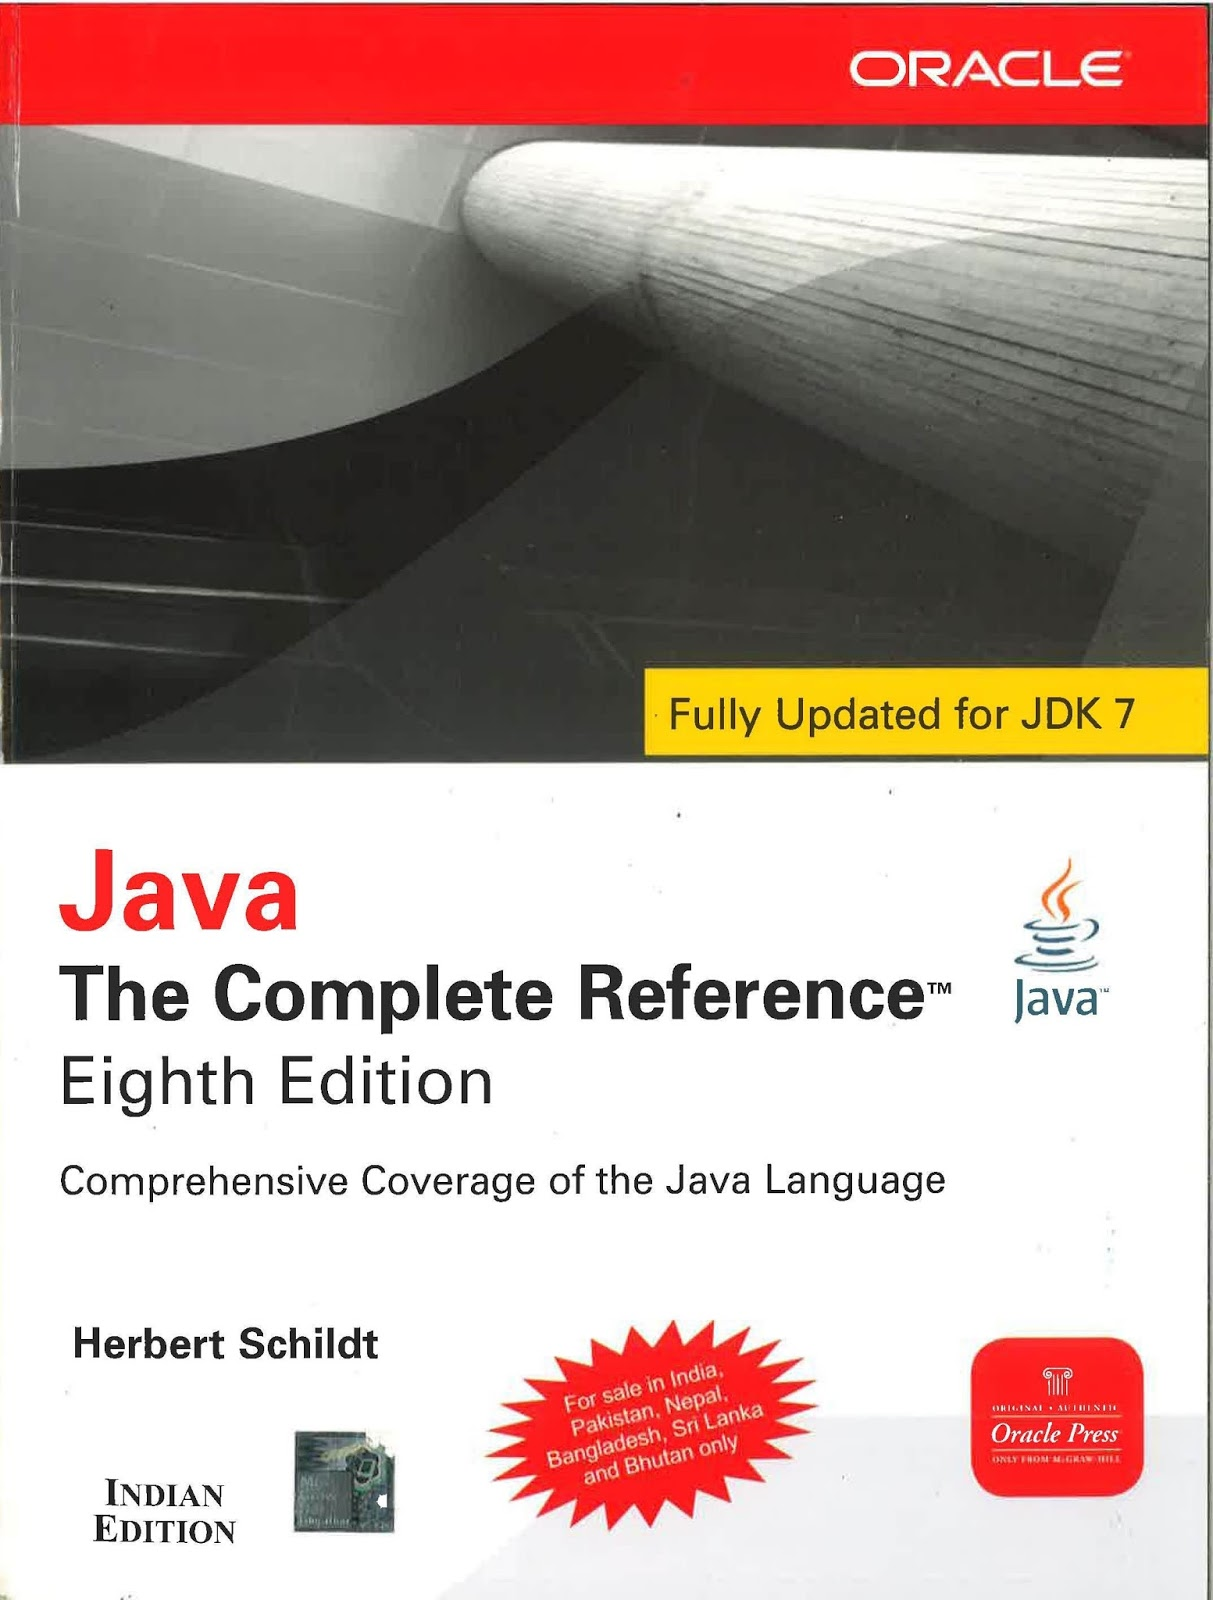 Java The Complete Reference 8th Edition By Herbert Schildt Pdf Free